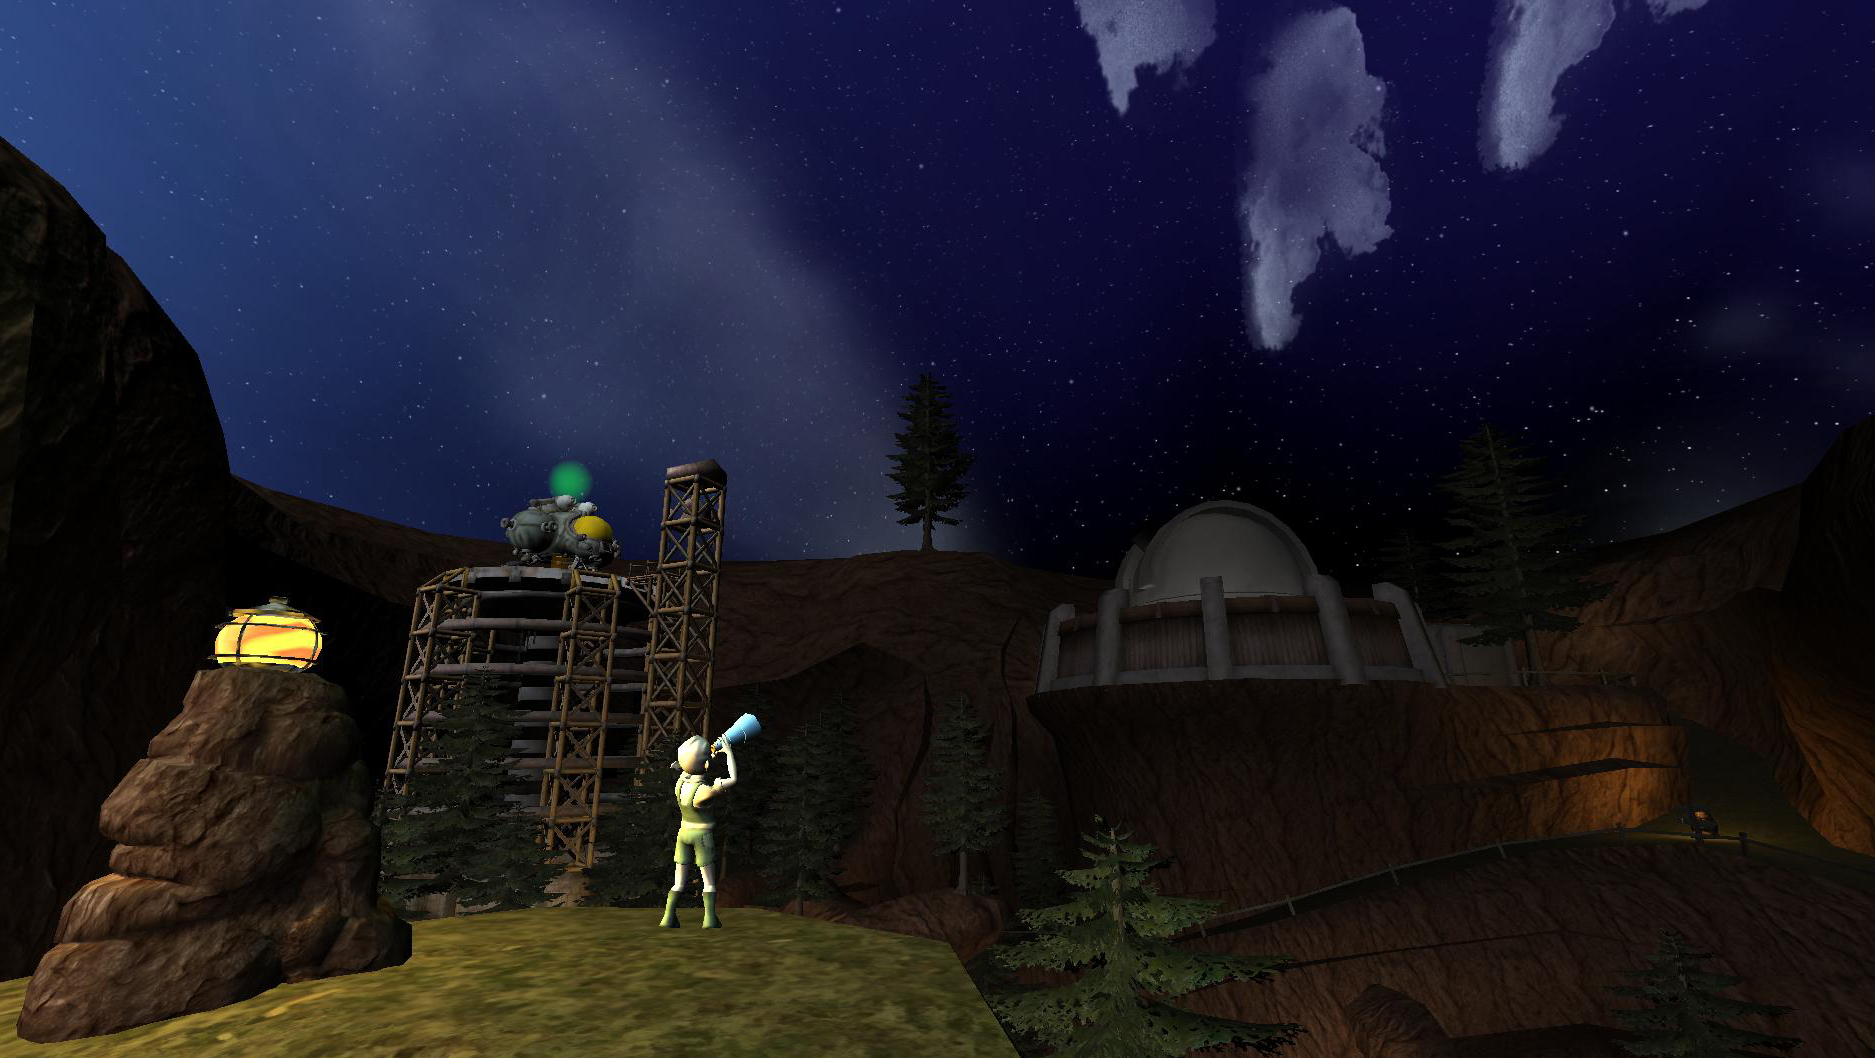 Investors will be able to own a piece of Outer Wilds through equity crowdfunding on Fig.